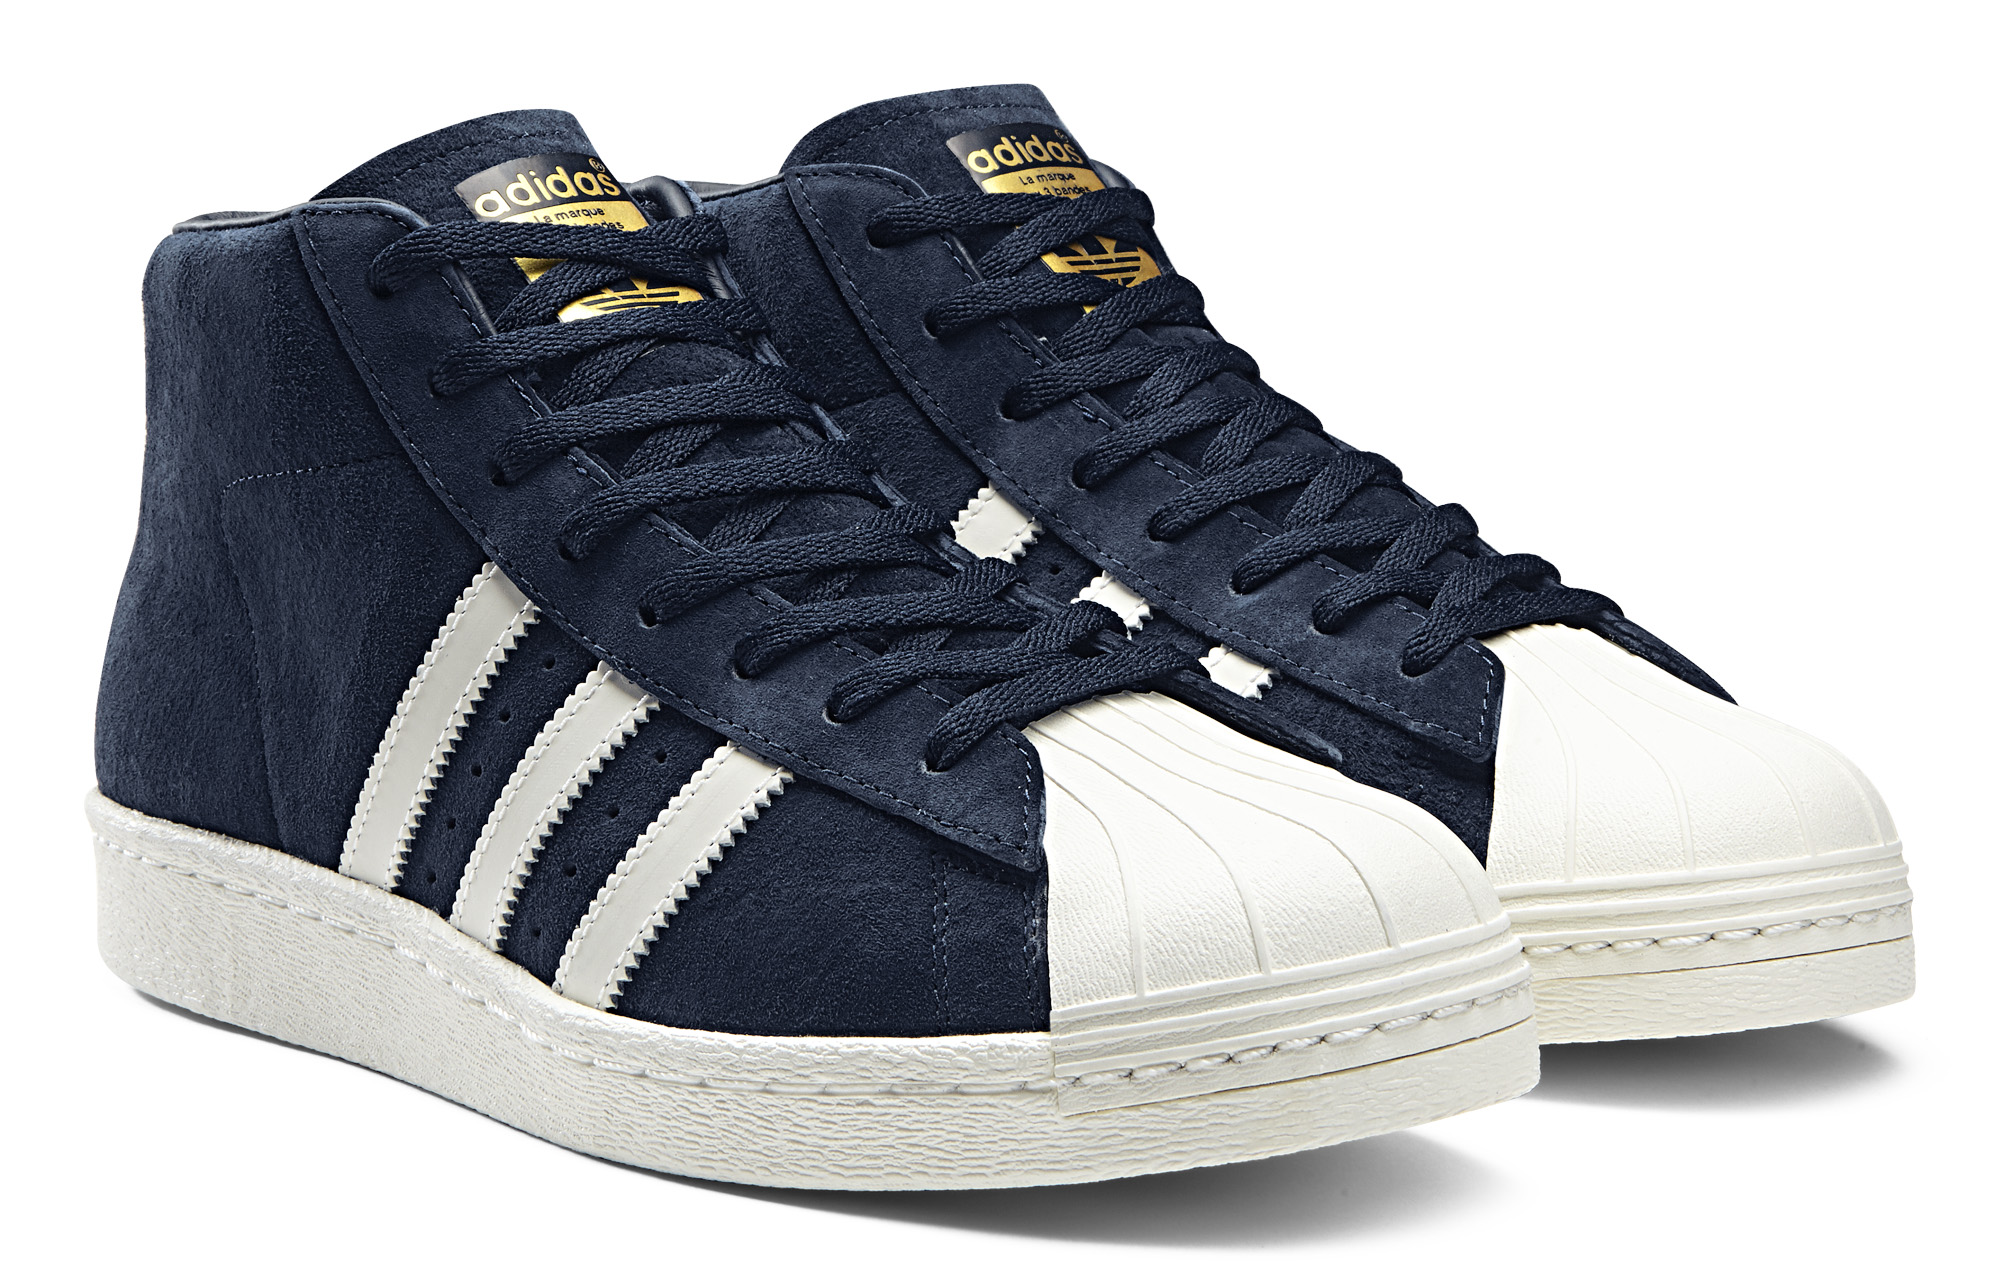 adidas superstar high top